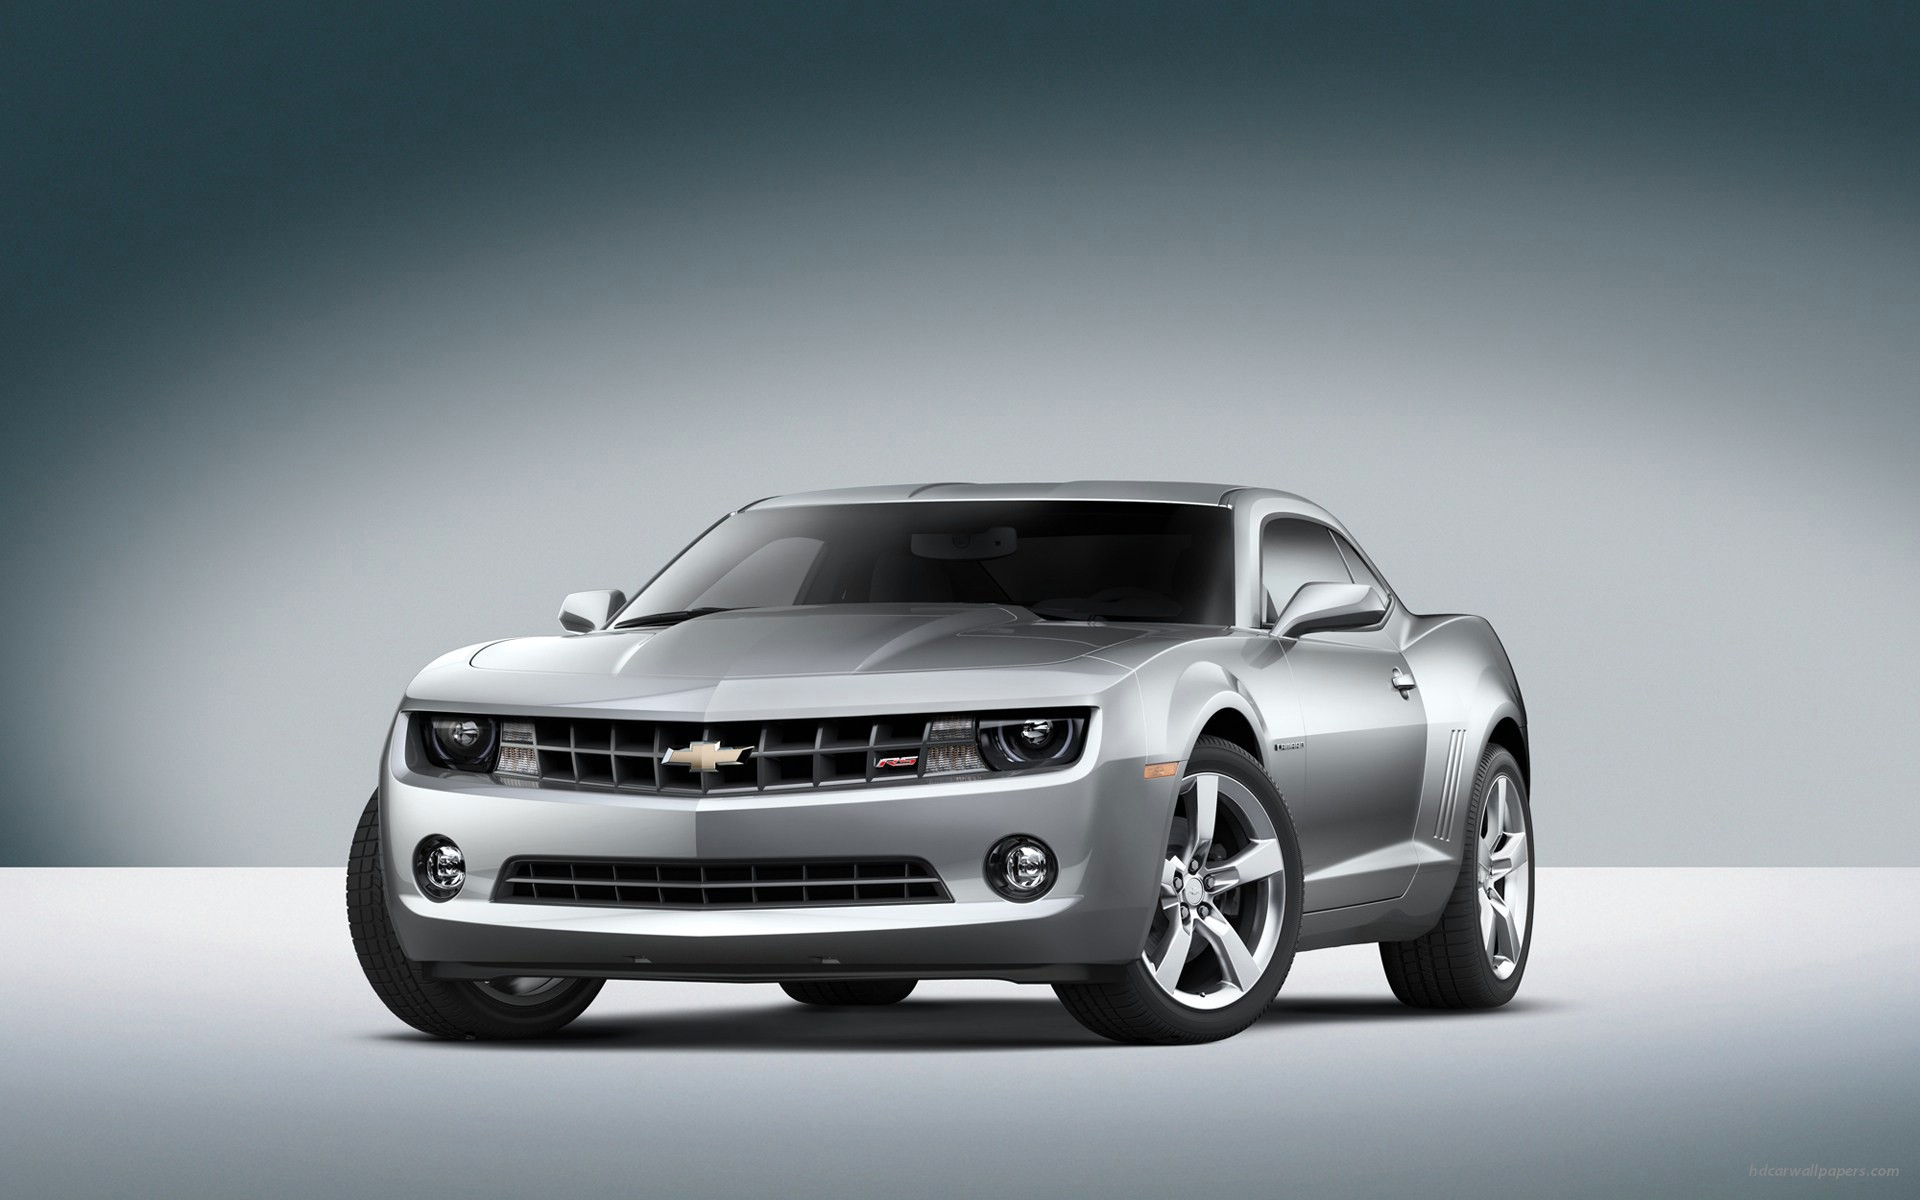 2010 Chevrolet Camaro RS 8 219.77 Kb